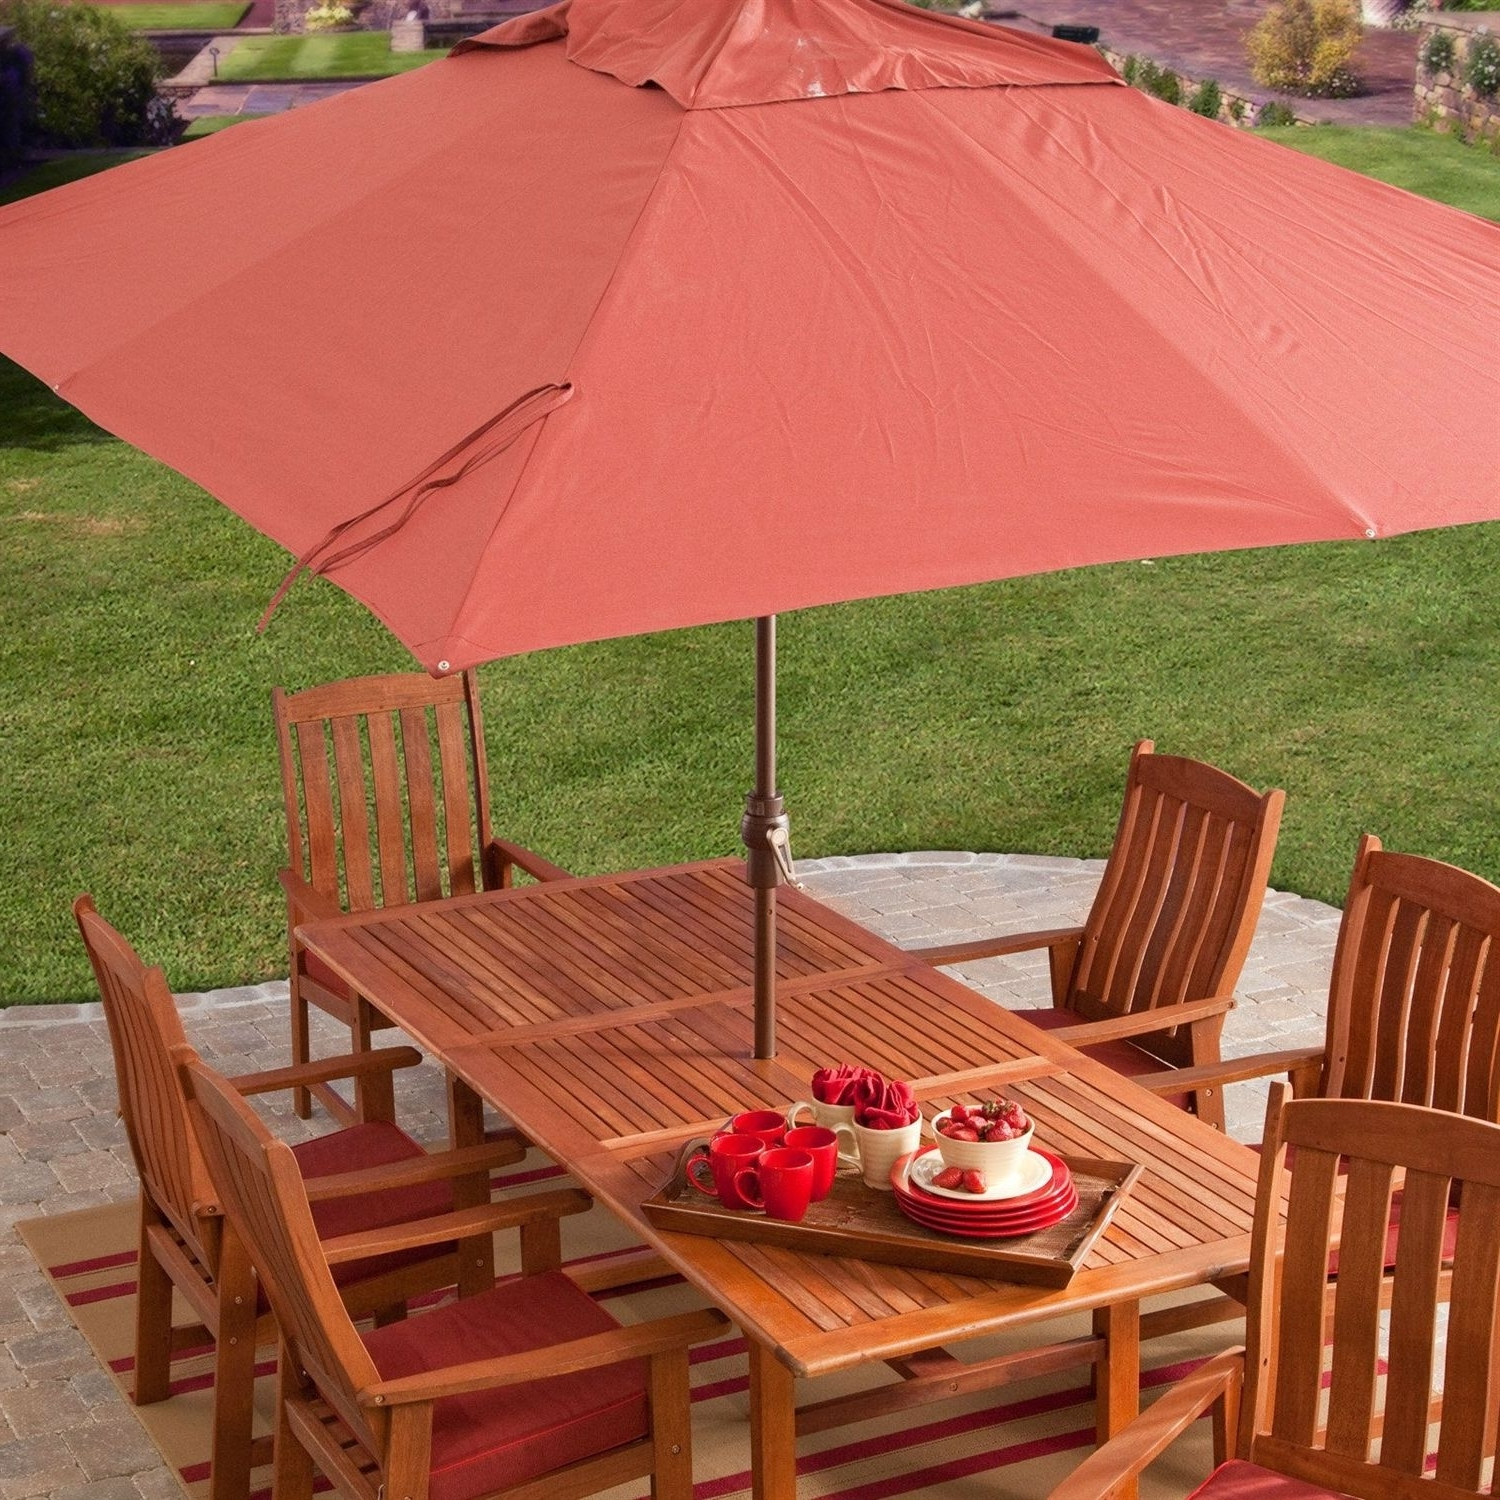 Most Recently Released 8 X 11 Ft Rectangle Patio Umbrella With Red Orange Terracotta Canopy Inside Rectangle Patio Umbrellas (View 7 of 20)